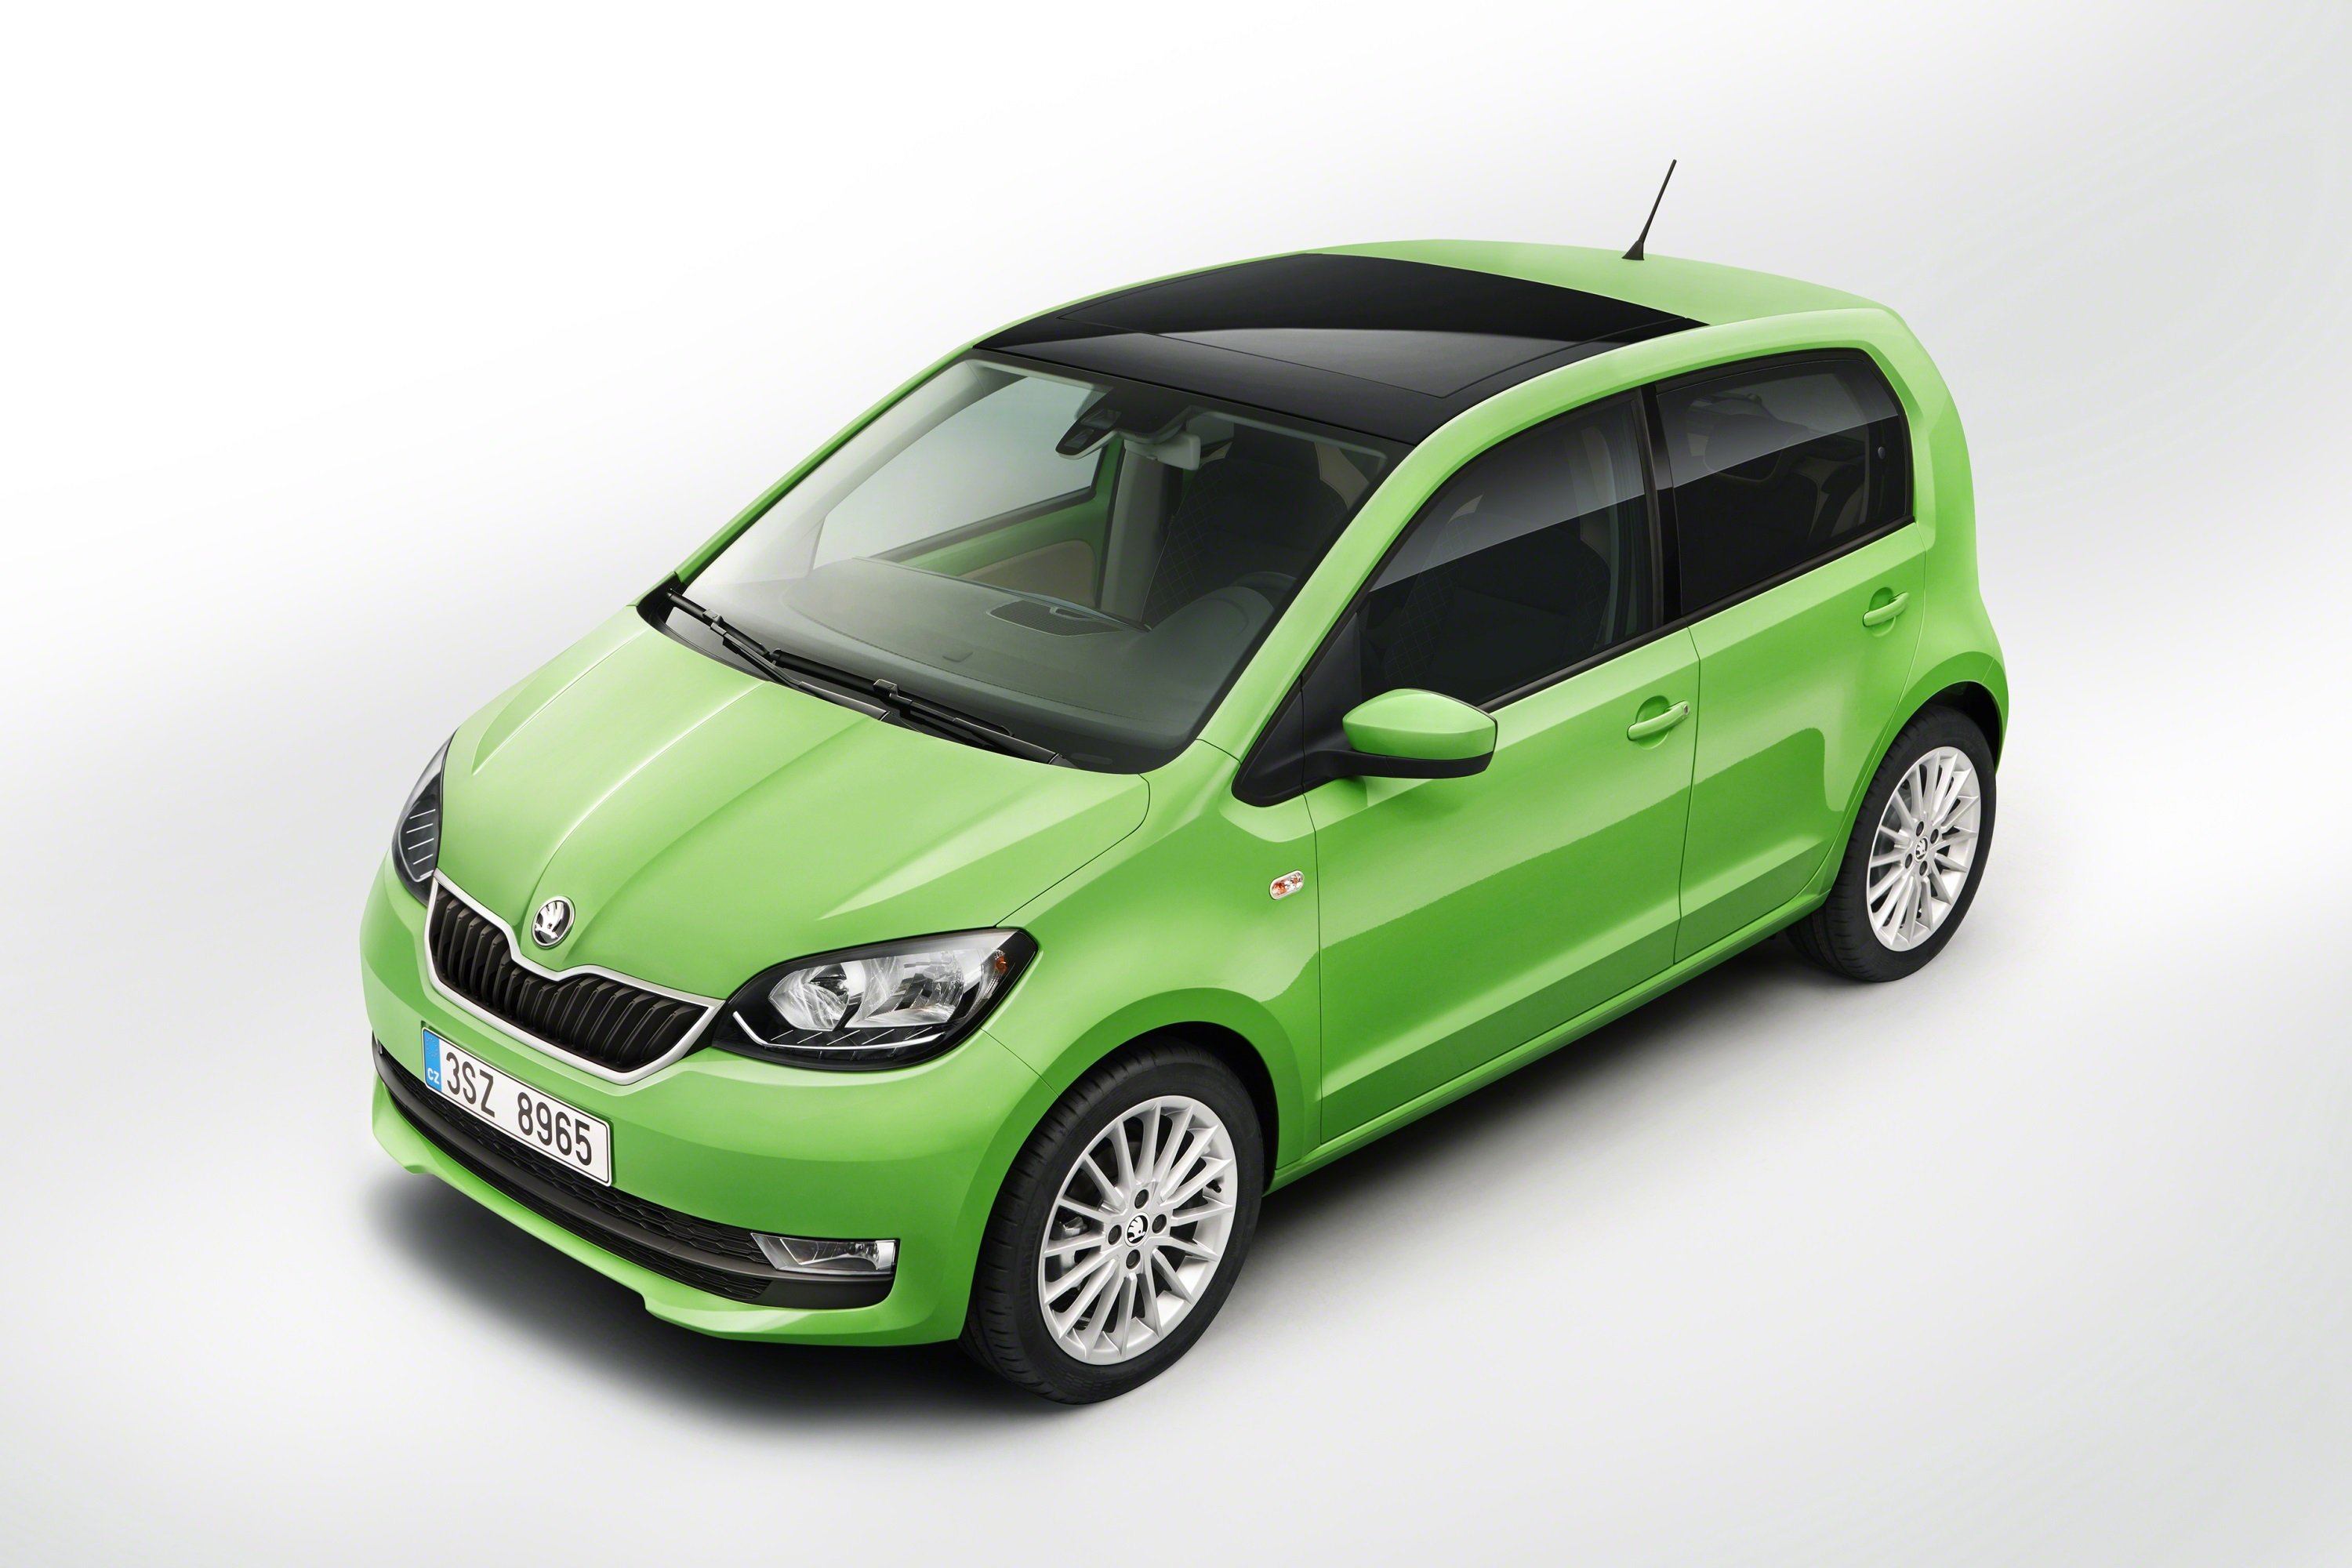 skoda citigo weil autos einfach spa machen. Black Bedroom Furniture Sets. Home Design Ideas